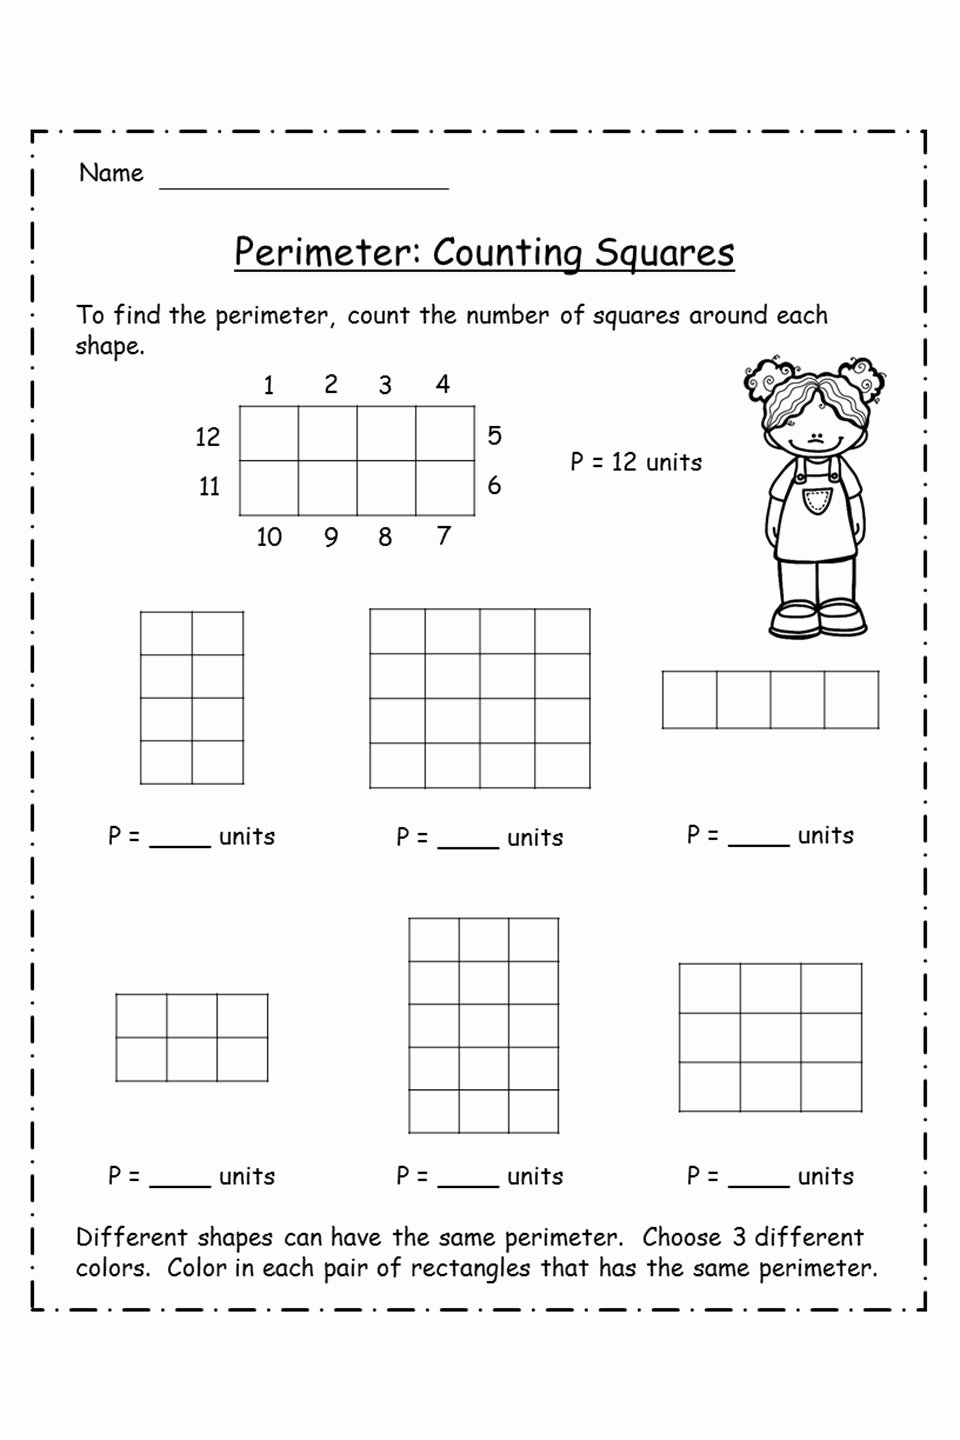 Perimeter Worksheet for 3rd Grade Kids Perimeter Worksheet for 3rd Grade In 2020